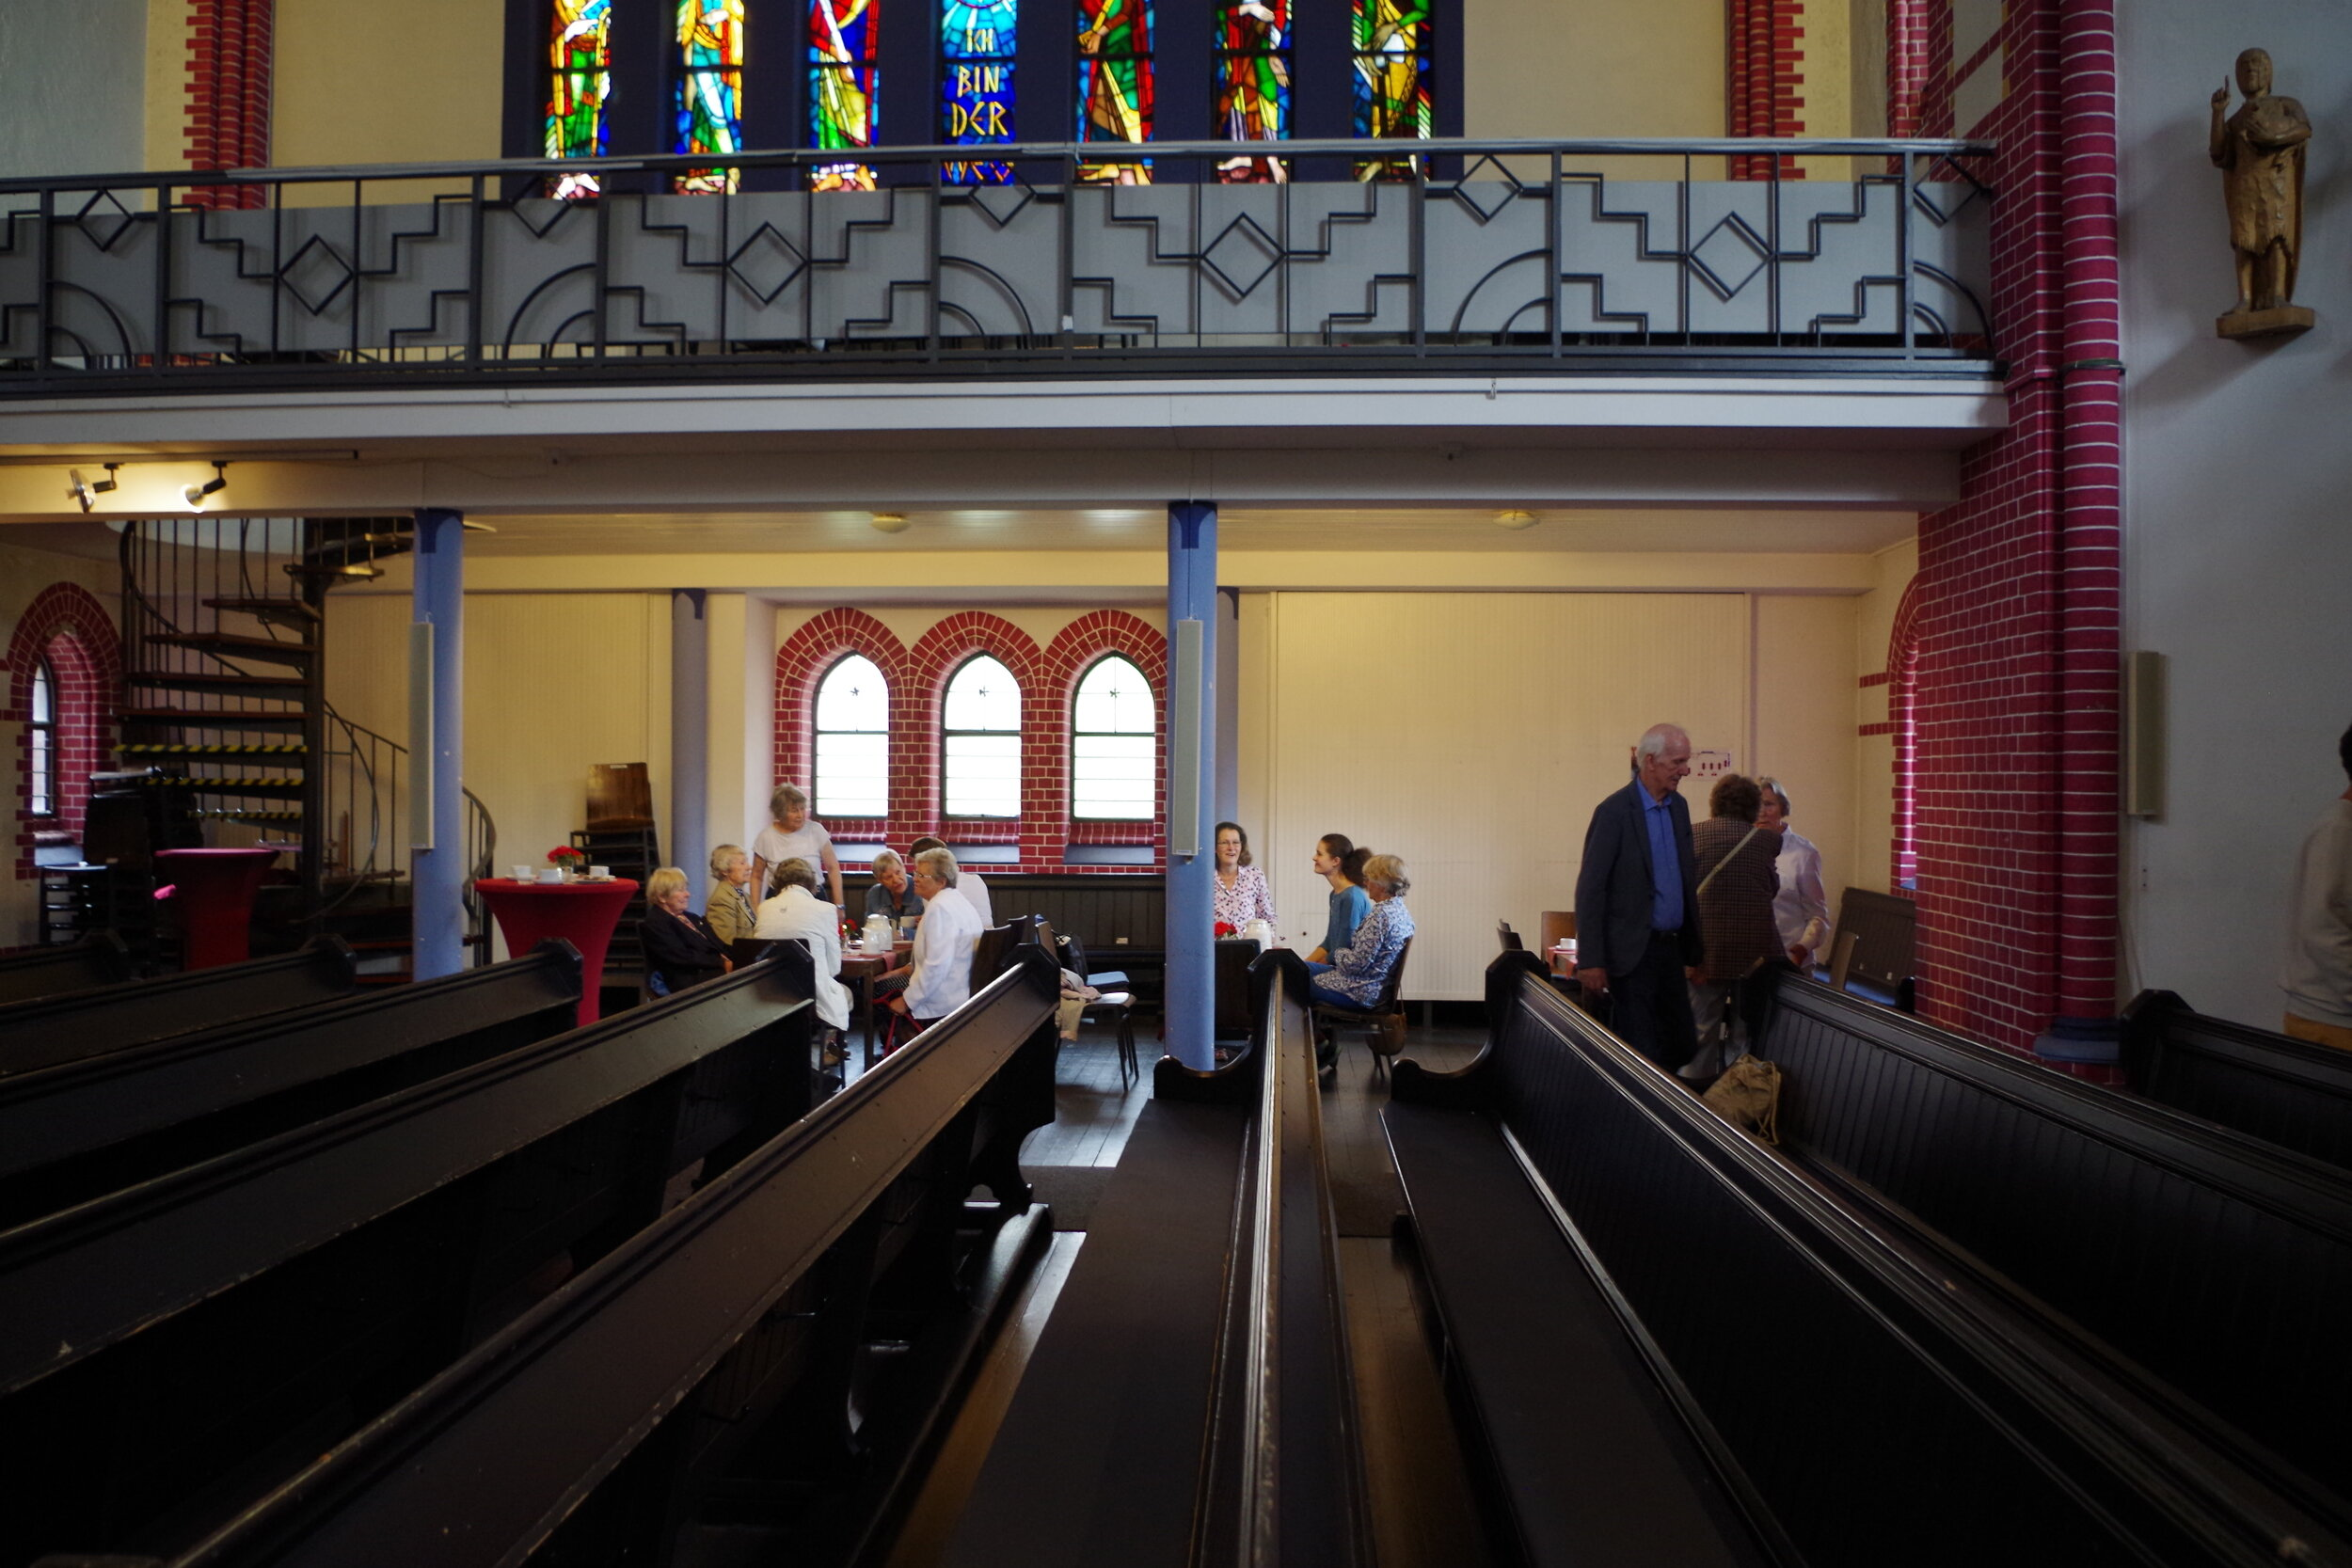 The Protestant church members gather for coffee and cake after service each Sunday. Photo by Jelena Malkowski.